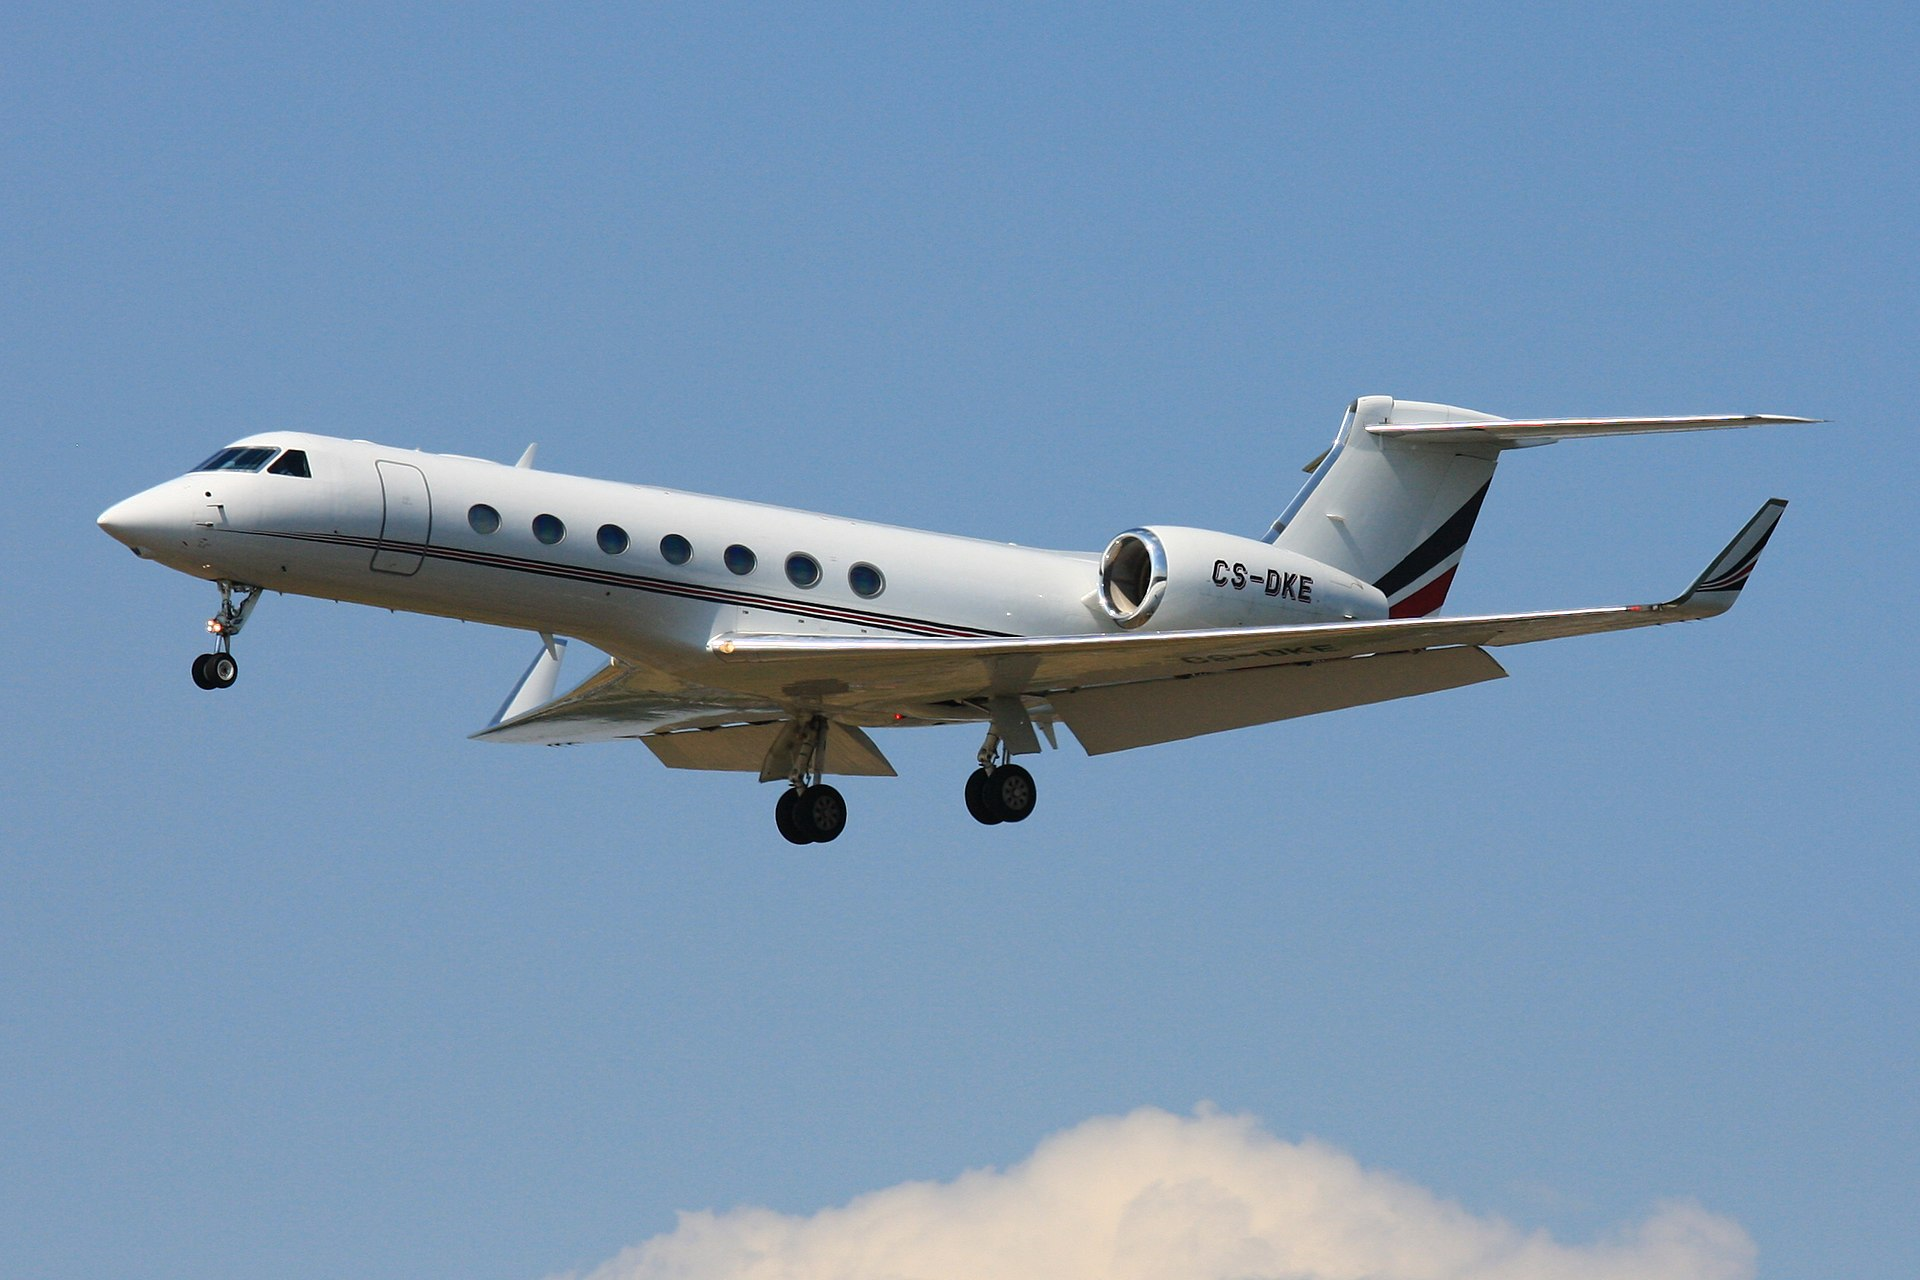 gulfstream g550 wikipedia military trailer plug wiring diagram military trailer plug wiring diagram